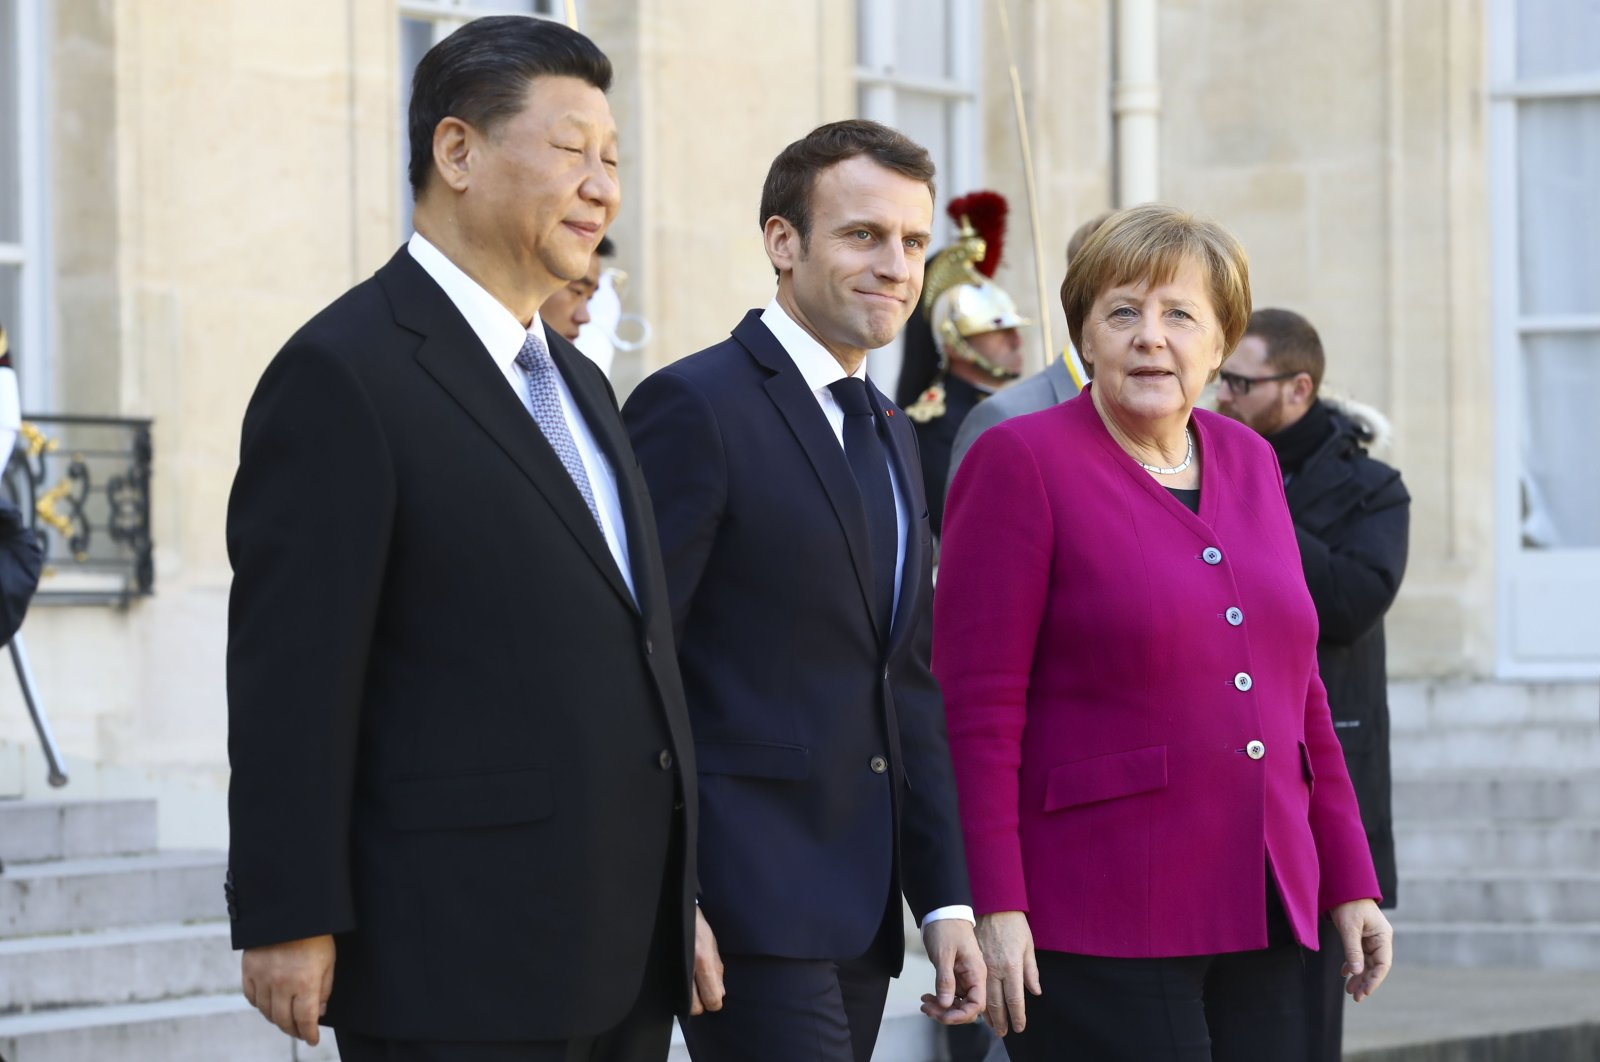 Chinese leader Xi Jinping (L), French President Emmanuel Macron (C) and German Chancellor Angela Merkel leave the Elysee Palace after a meetingon Mar. 29, 2019, Paris, France (Reuters File Photo)